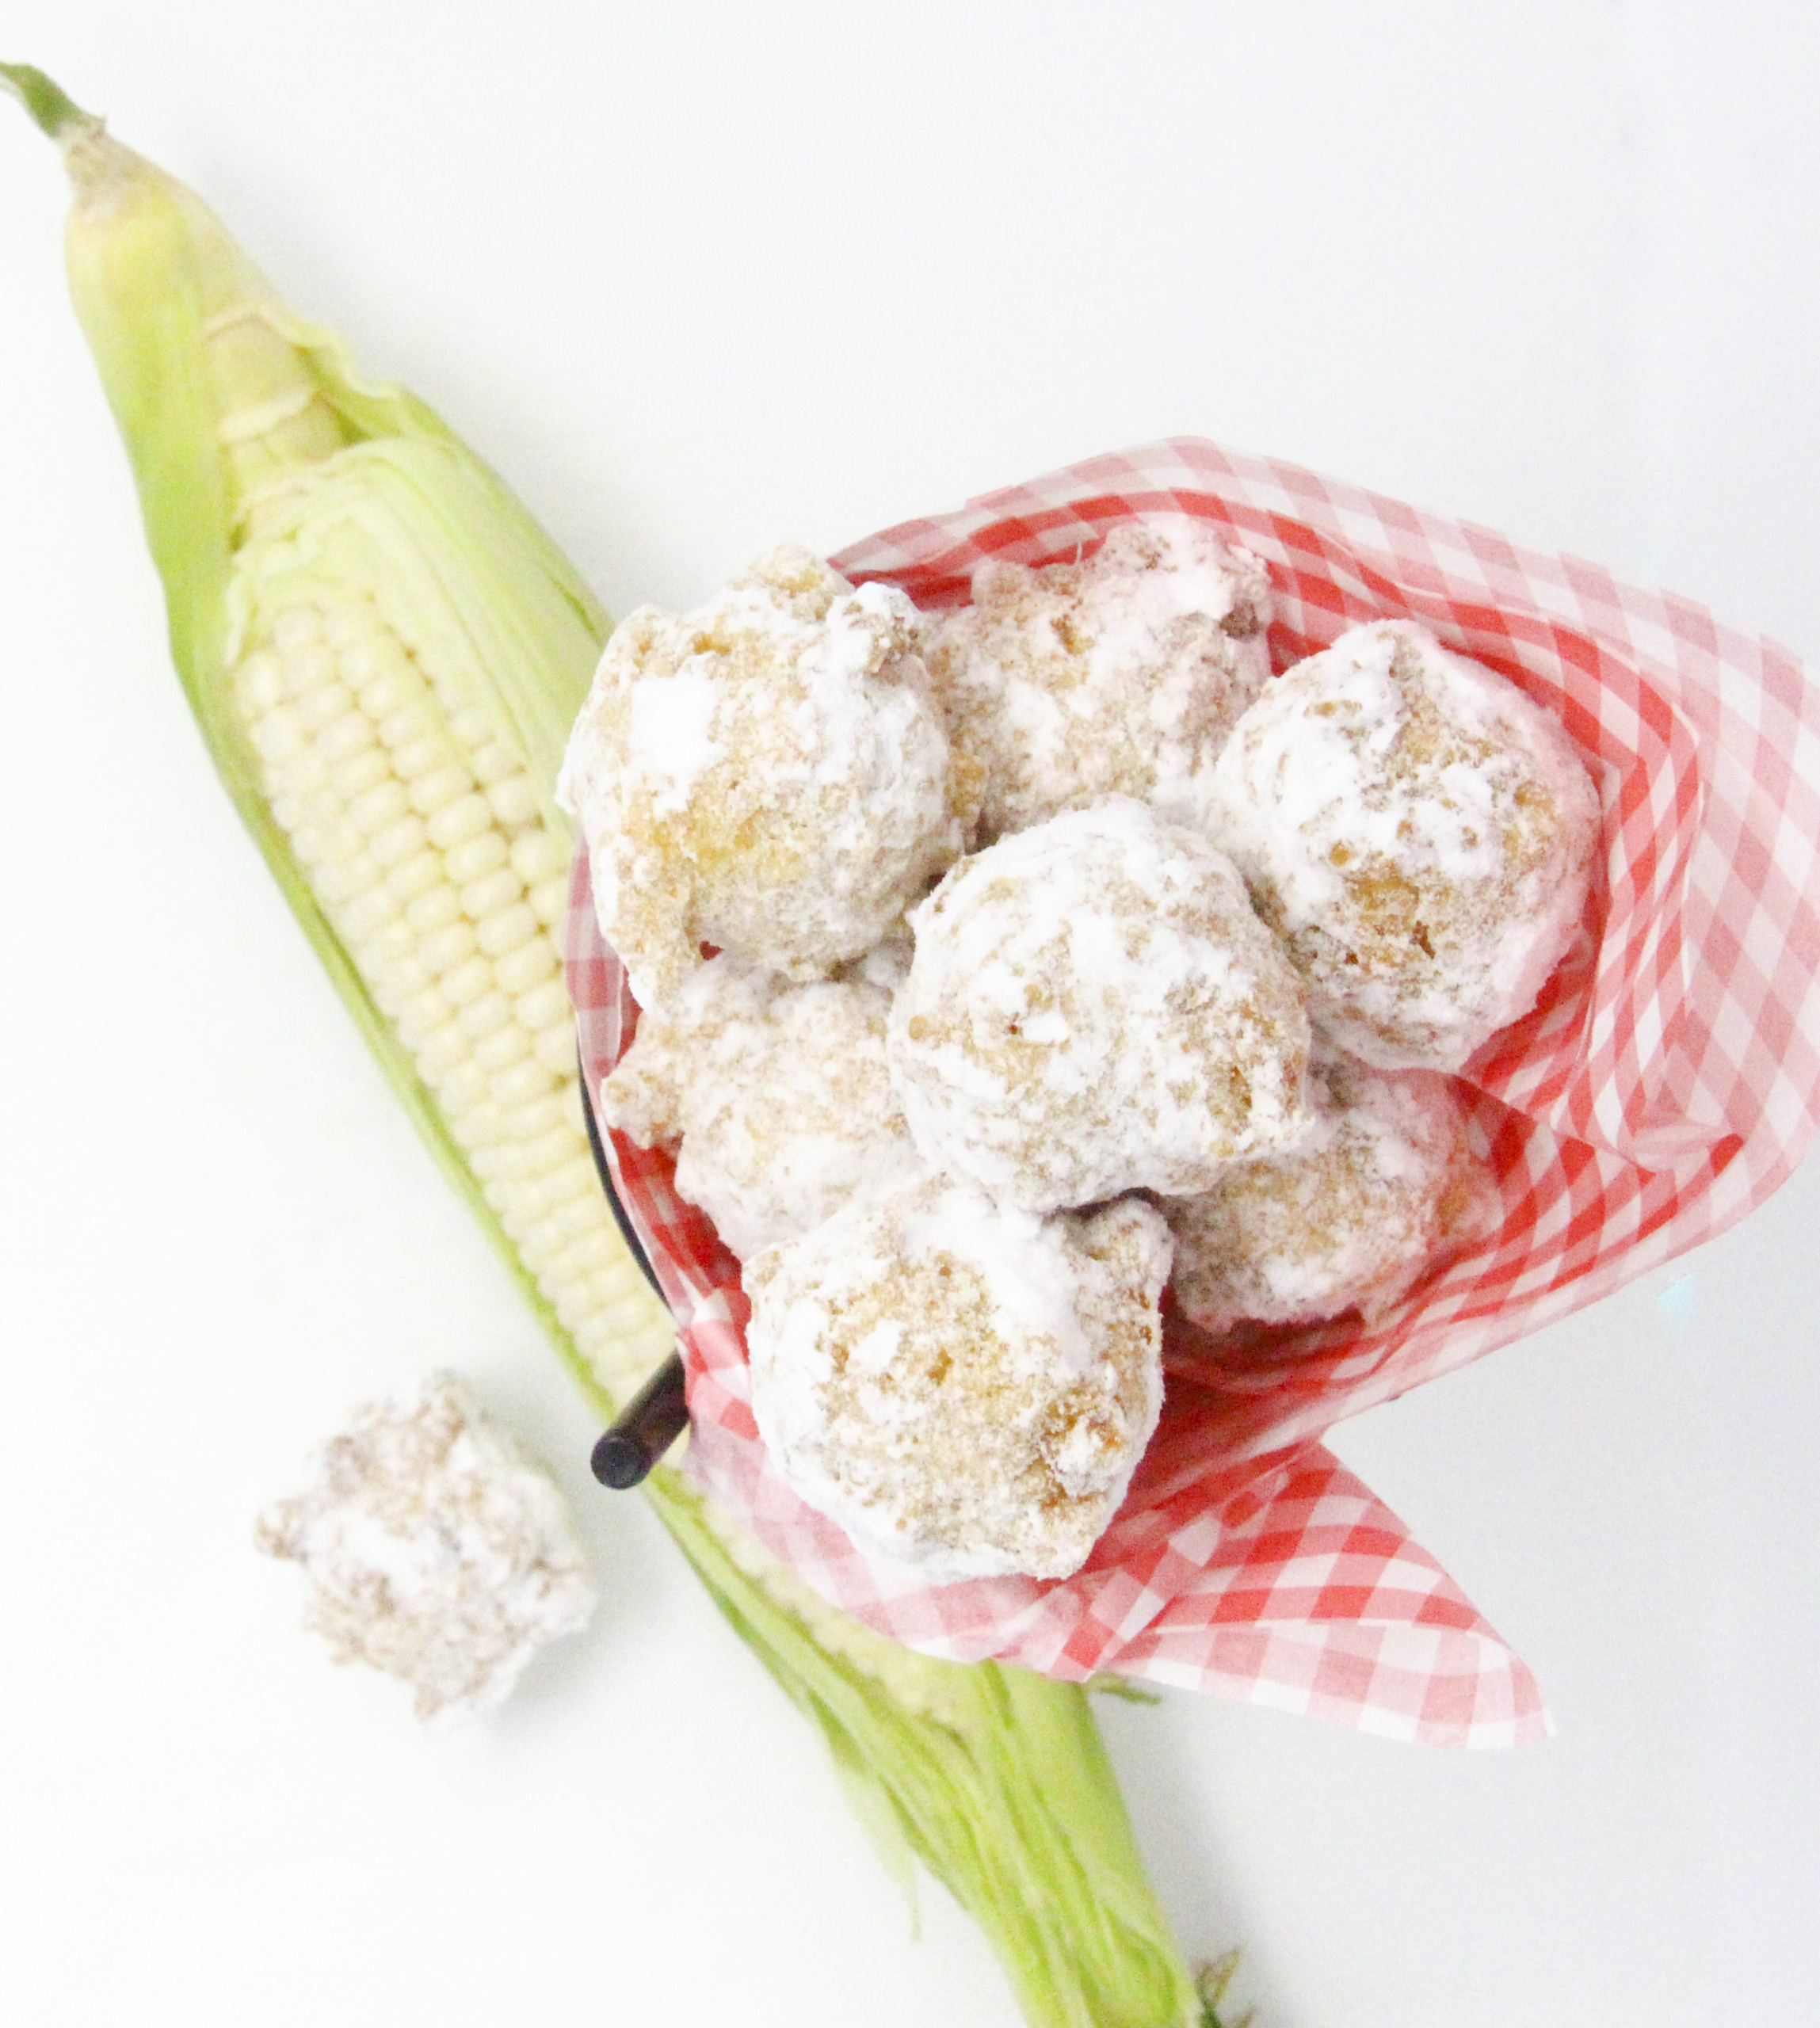 Corny Fritters can be served savory, spicy, or sweet depending on individual tastes. Fairly simple using canned or frozen corn, and a few other pantry and dairy staples, these delicious bites are quick to make. Recipe shared with permission granted by Ginger Bolton, author of BEYOND A REASONABLE DONUT.